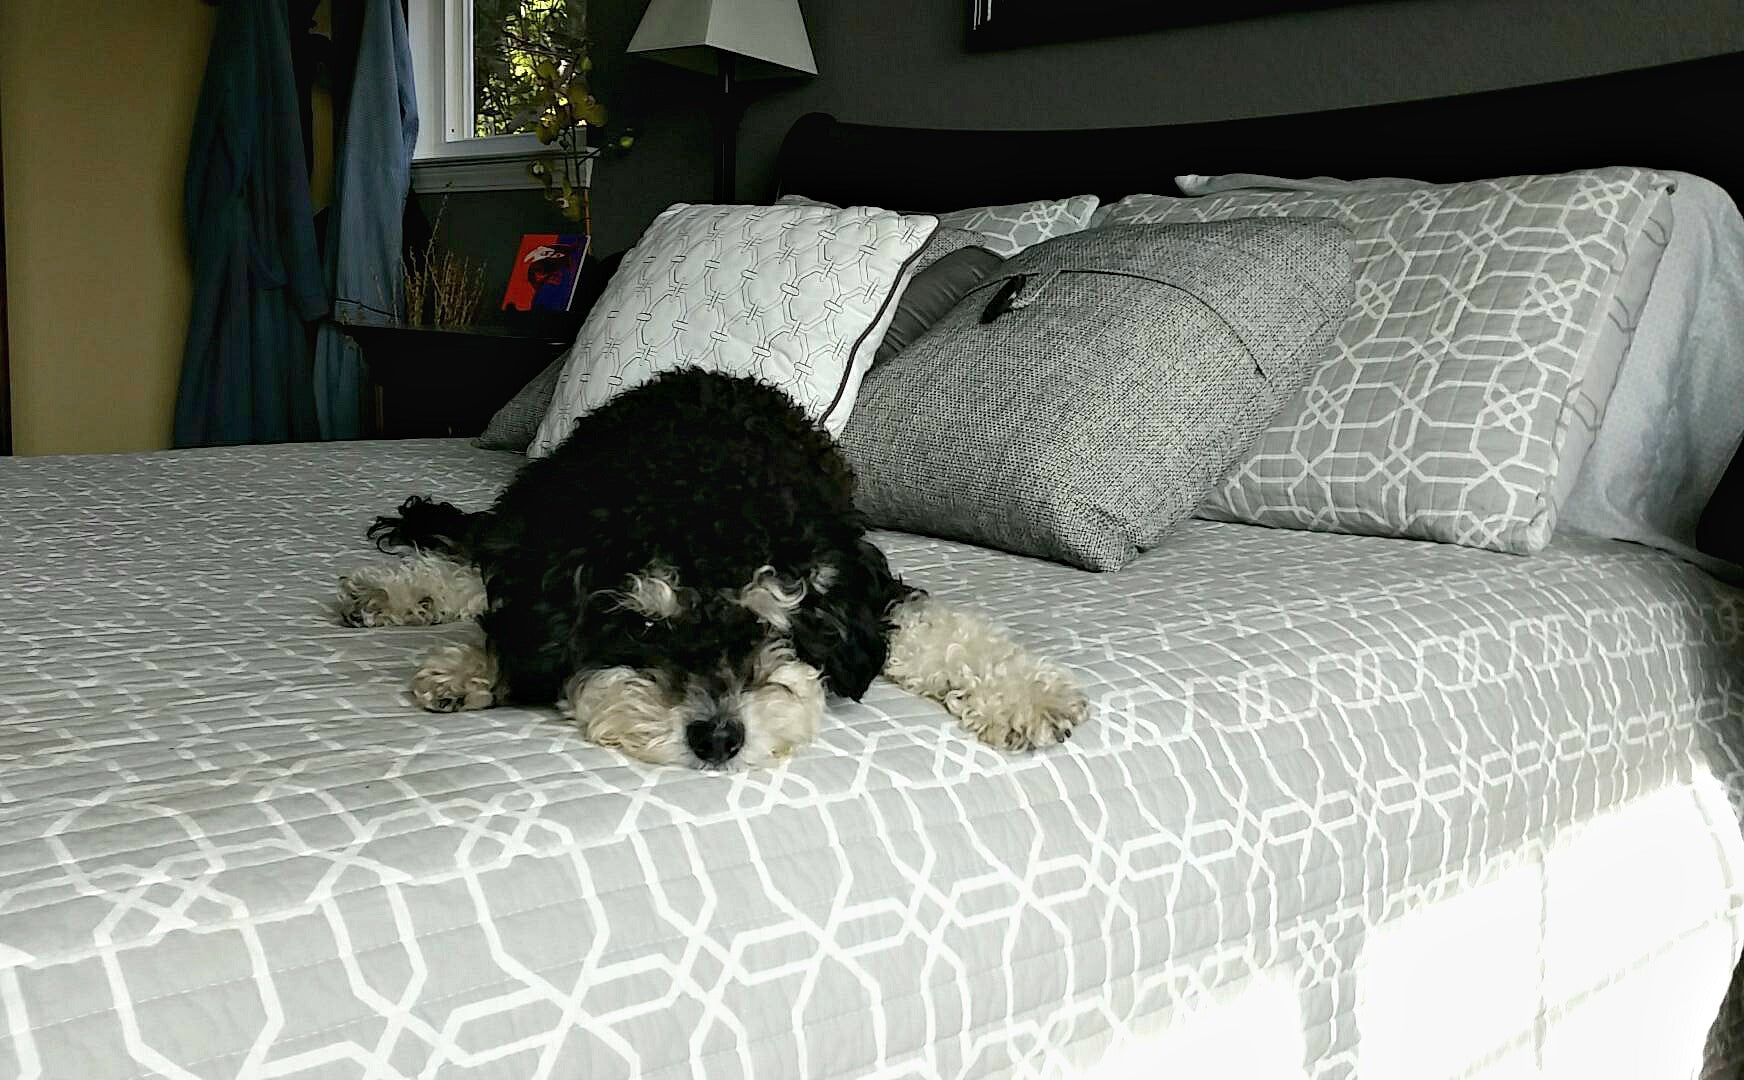 dog on bed - what does dog twitching in sleep mean?